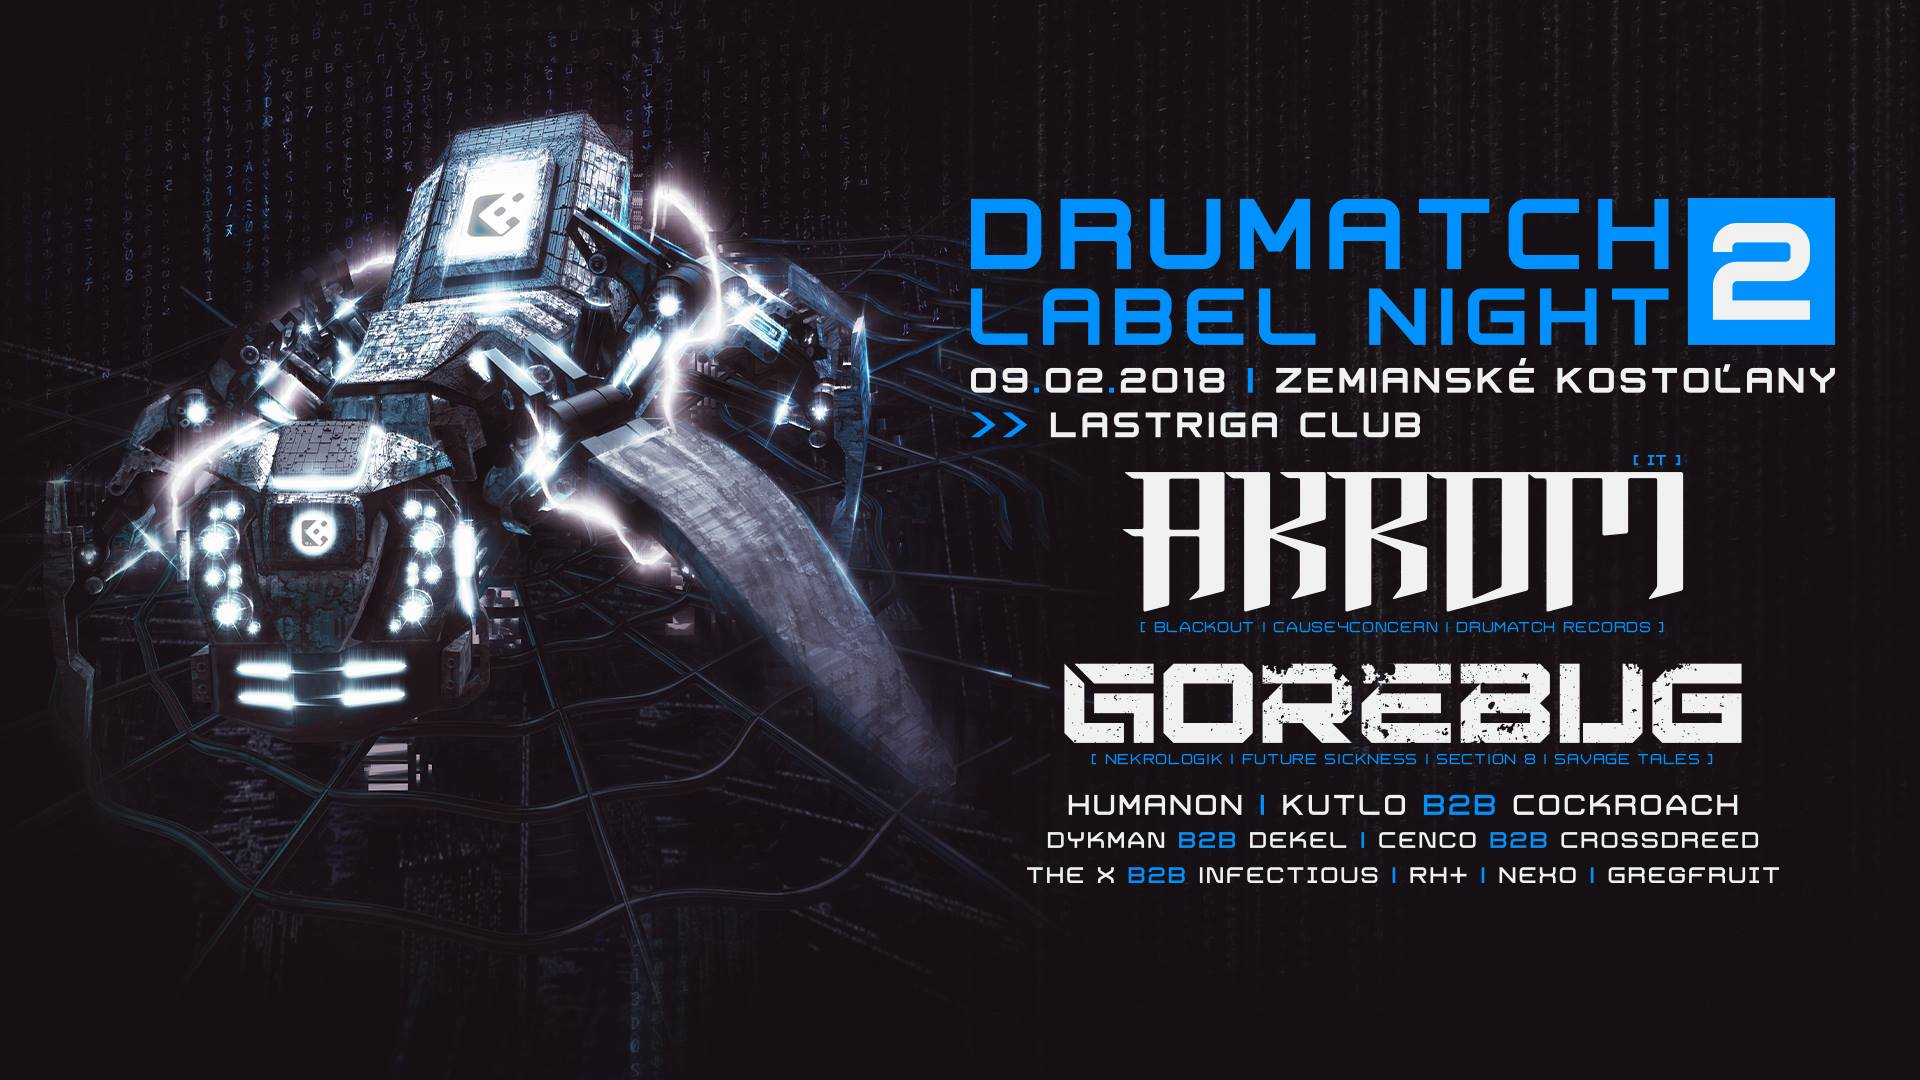 Drumatch Label Night 2 with Akrom & Gorebug /9.2.2018/